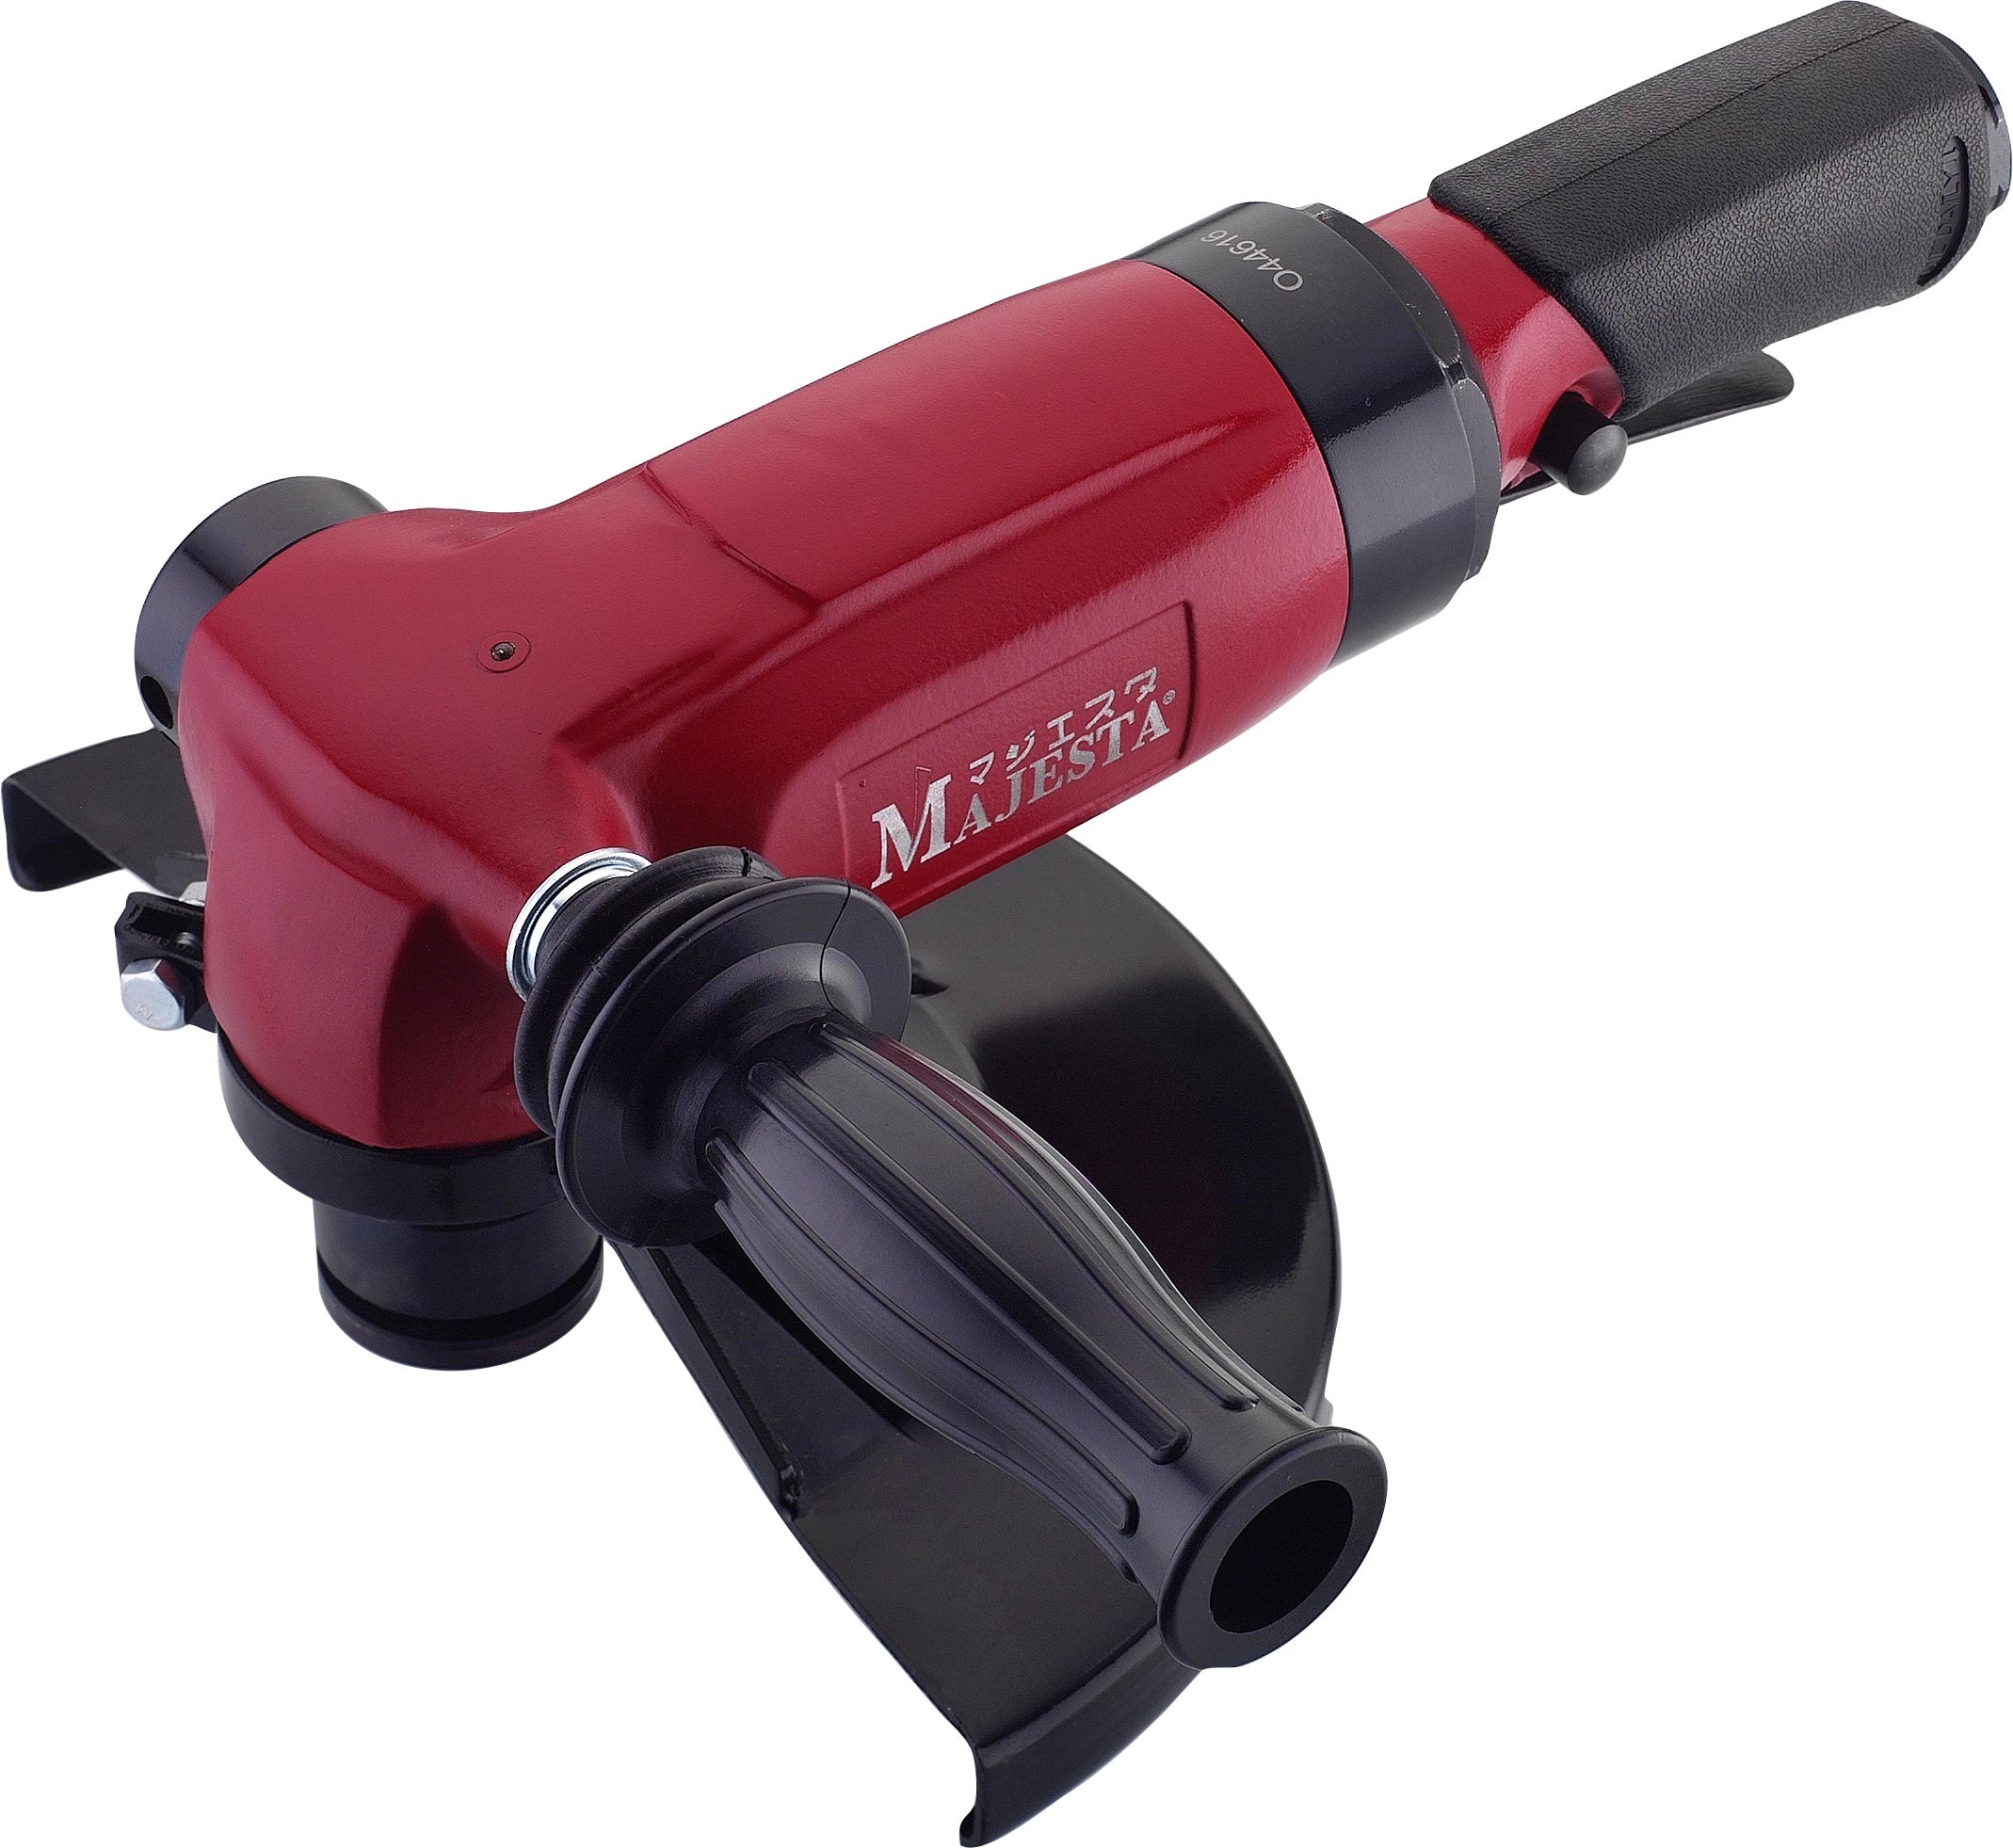 "MAJESTA AIR ANGLE GRINDER 9"" HEAVY DUTY AG-629L"